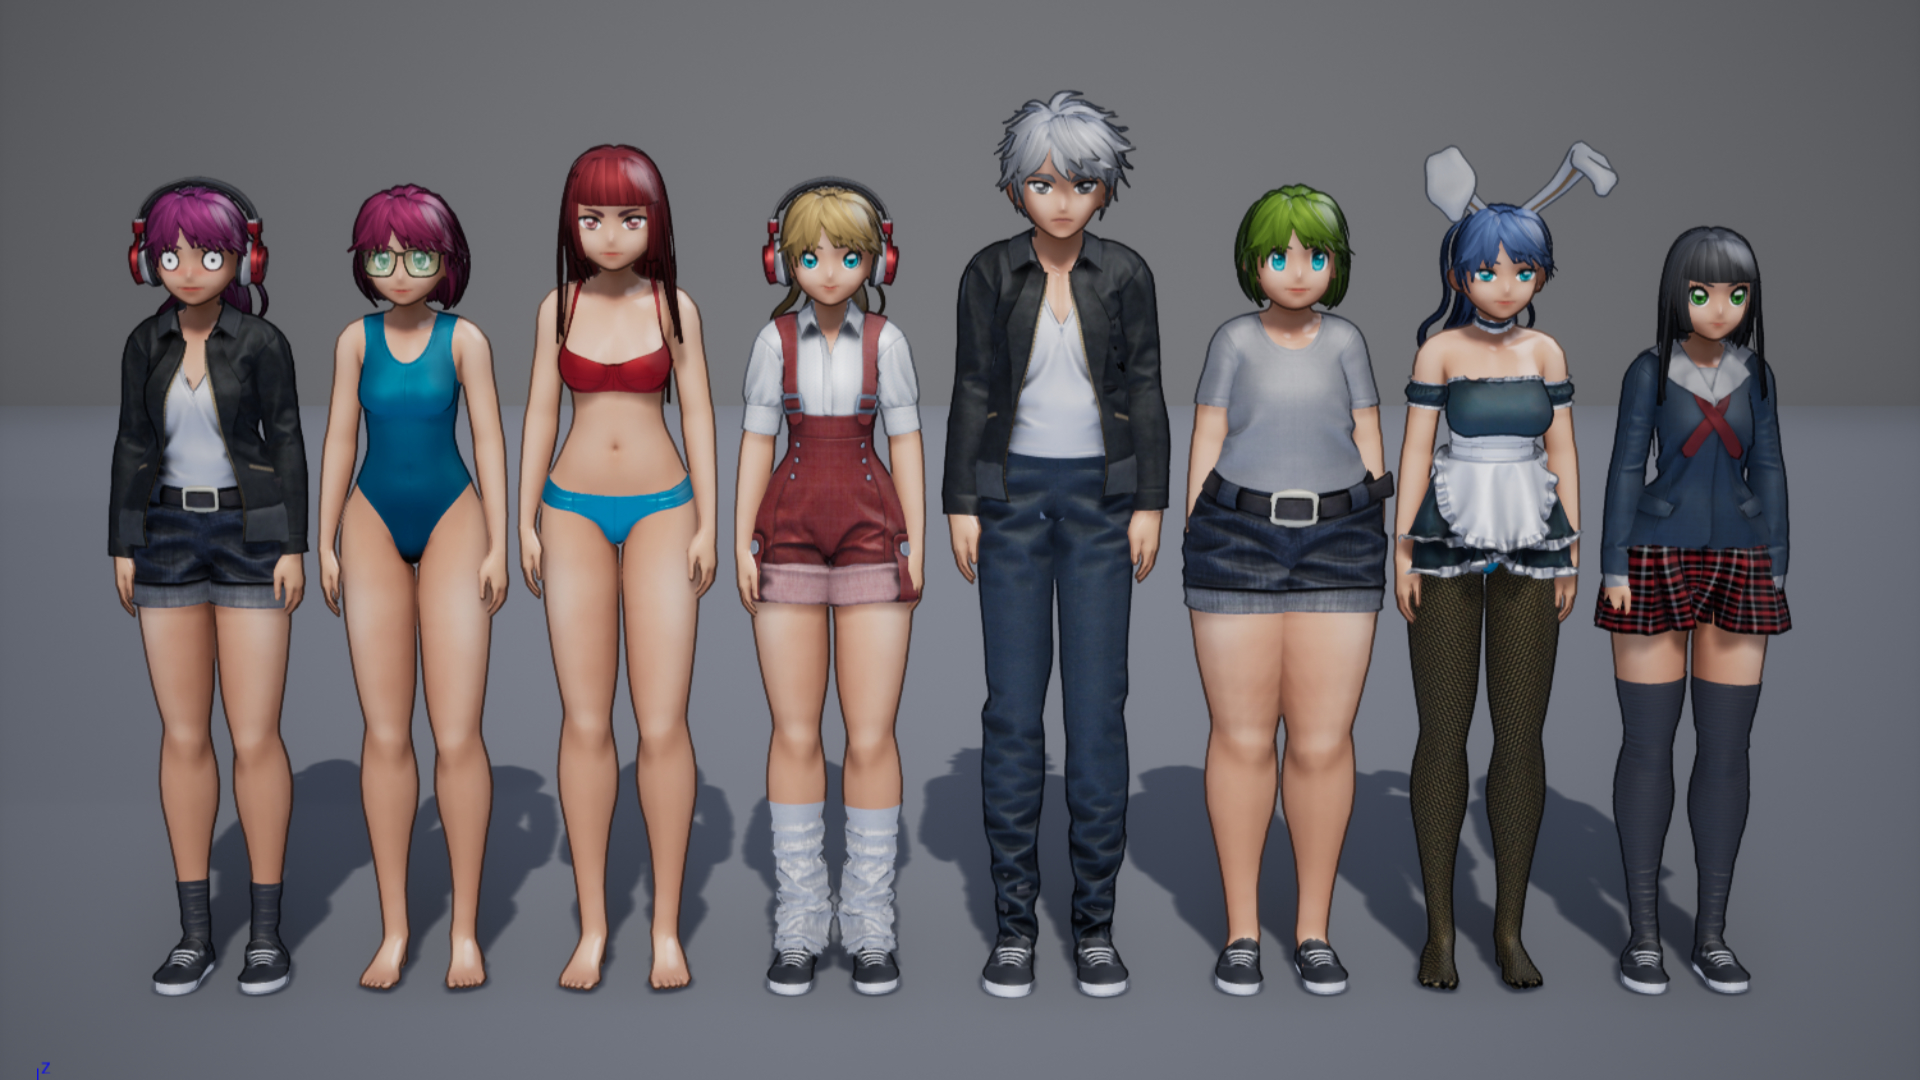 GR Customizable Anime Character 01 by Gustavo Rios in